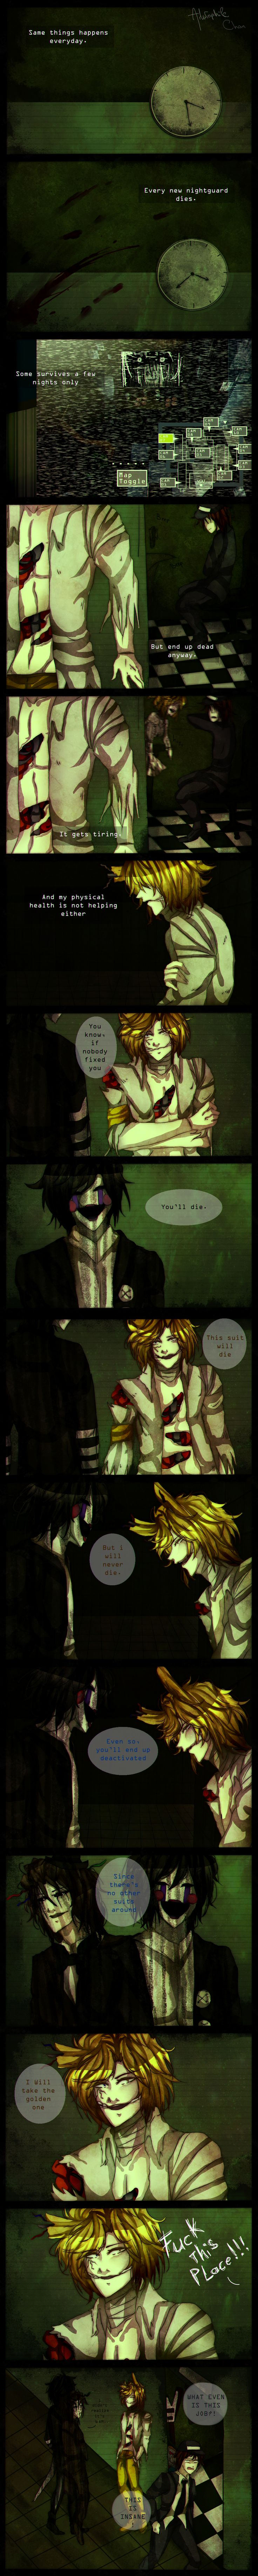 .: Lost [FNaF AU Comic] Page 8 :. by Ailurophile-Chan on DeviantArt